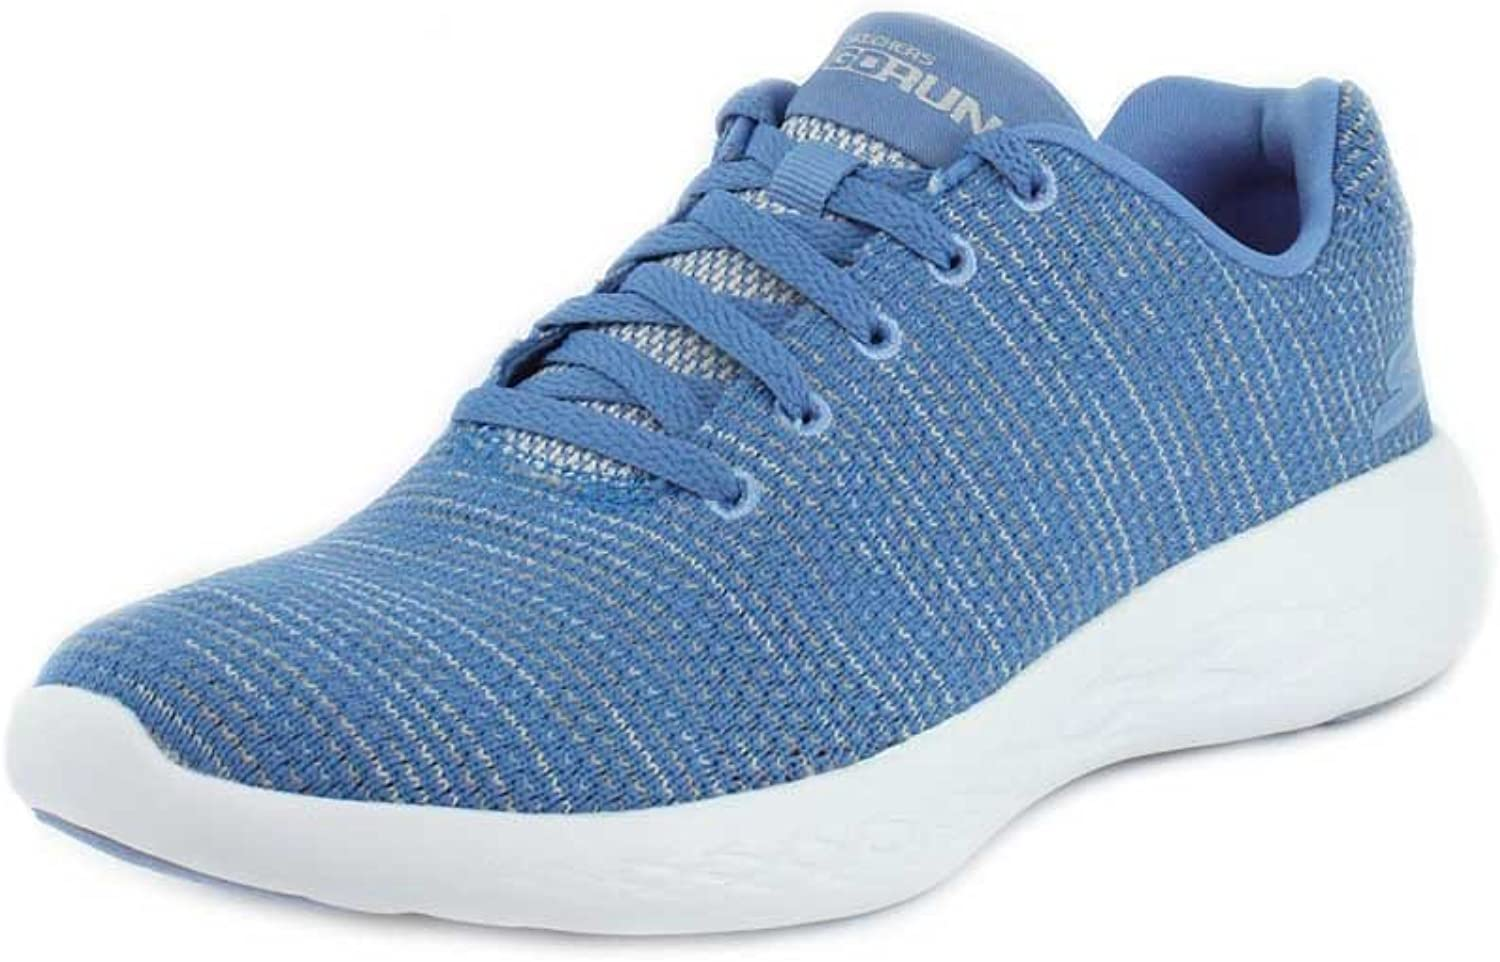 Skechers GOrun 600 Obtain Womens bluee Textile Athletic Lace Up Running shoes